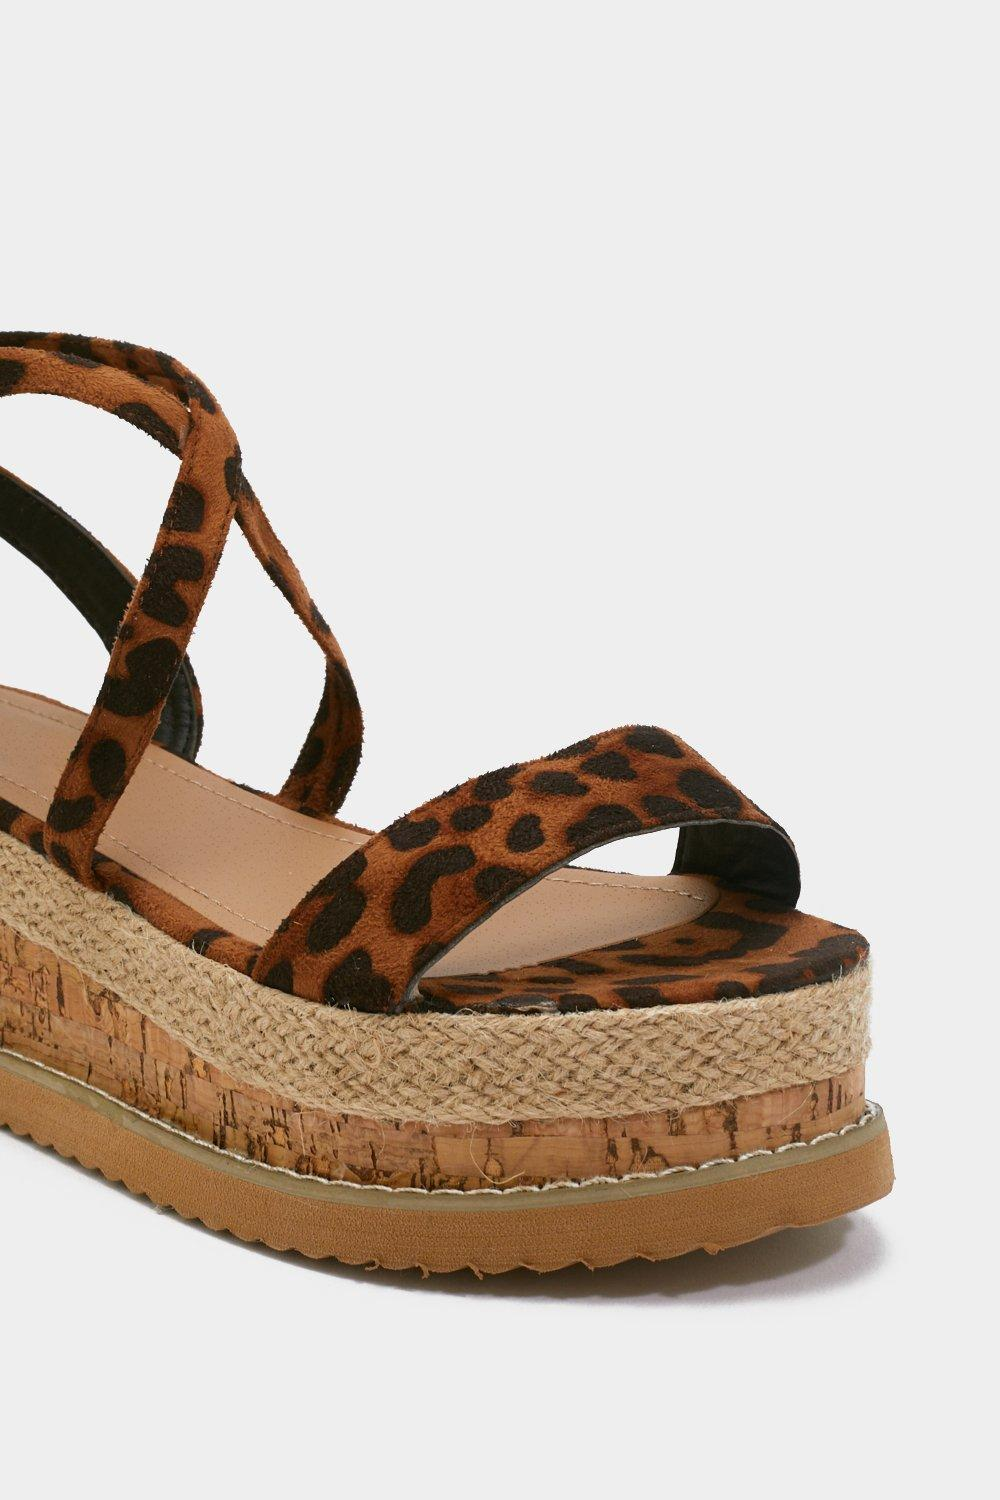 f995b2d82 Womens Brown Enough With the Cork Leopard Platform Sandals.